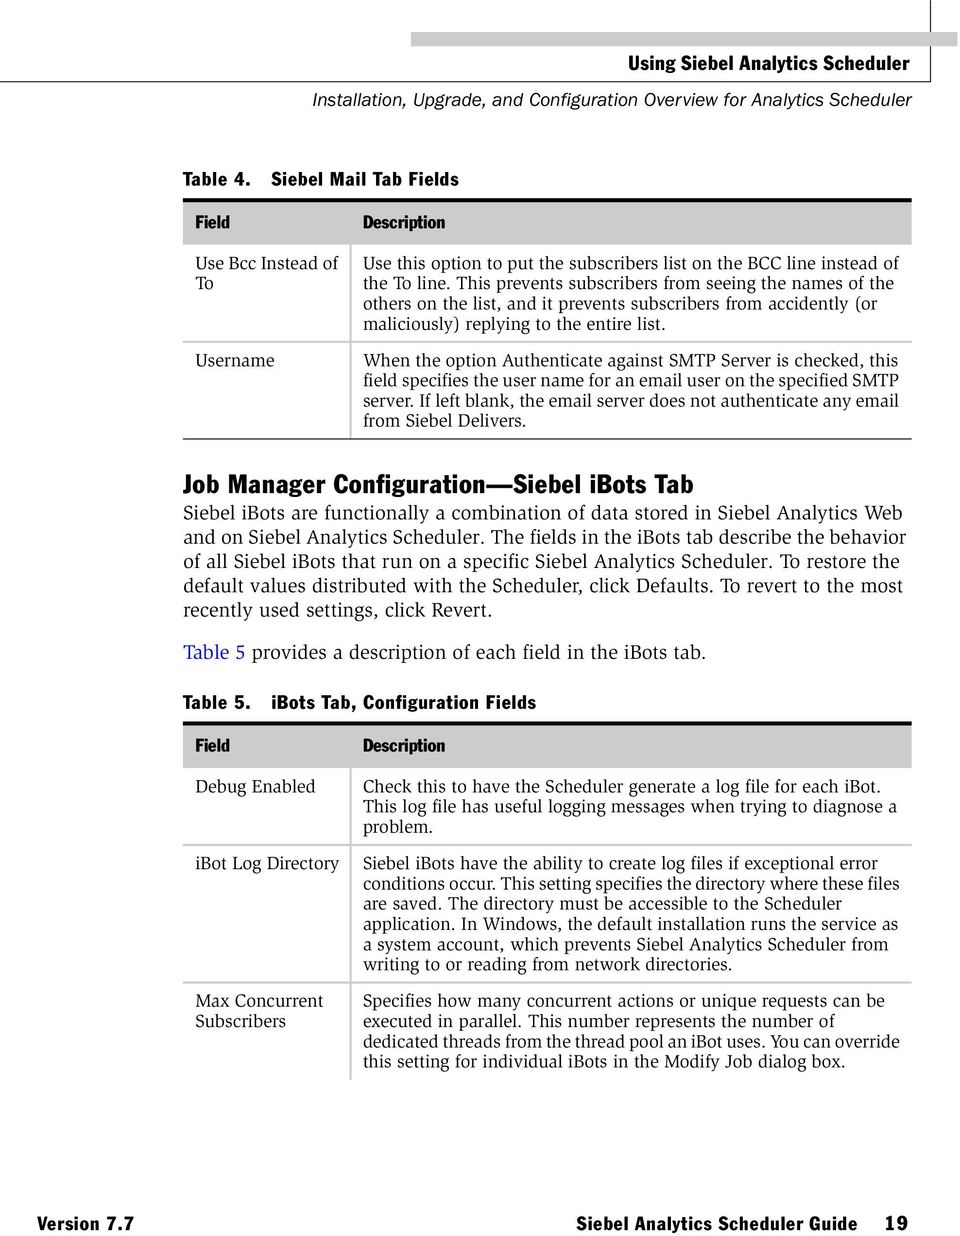 siebel analytics scheduler guide pdf rh docplayer net Database Management System Model Elementary School Oracle Information Systems for Construction